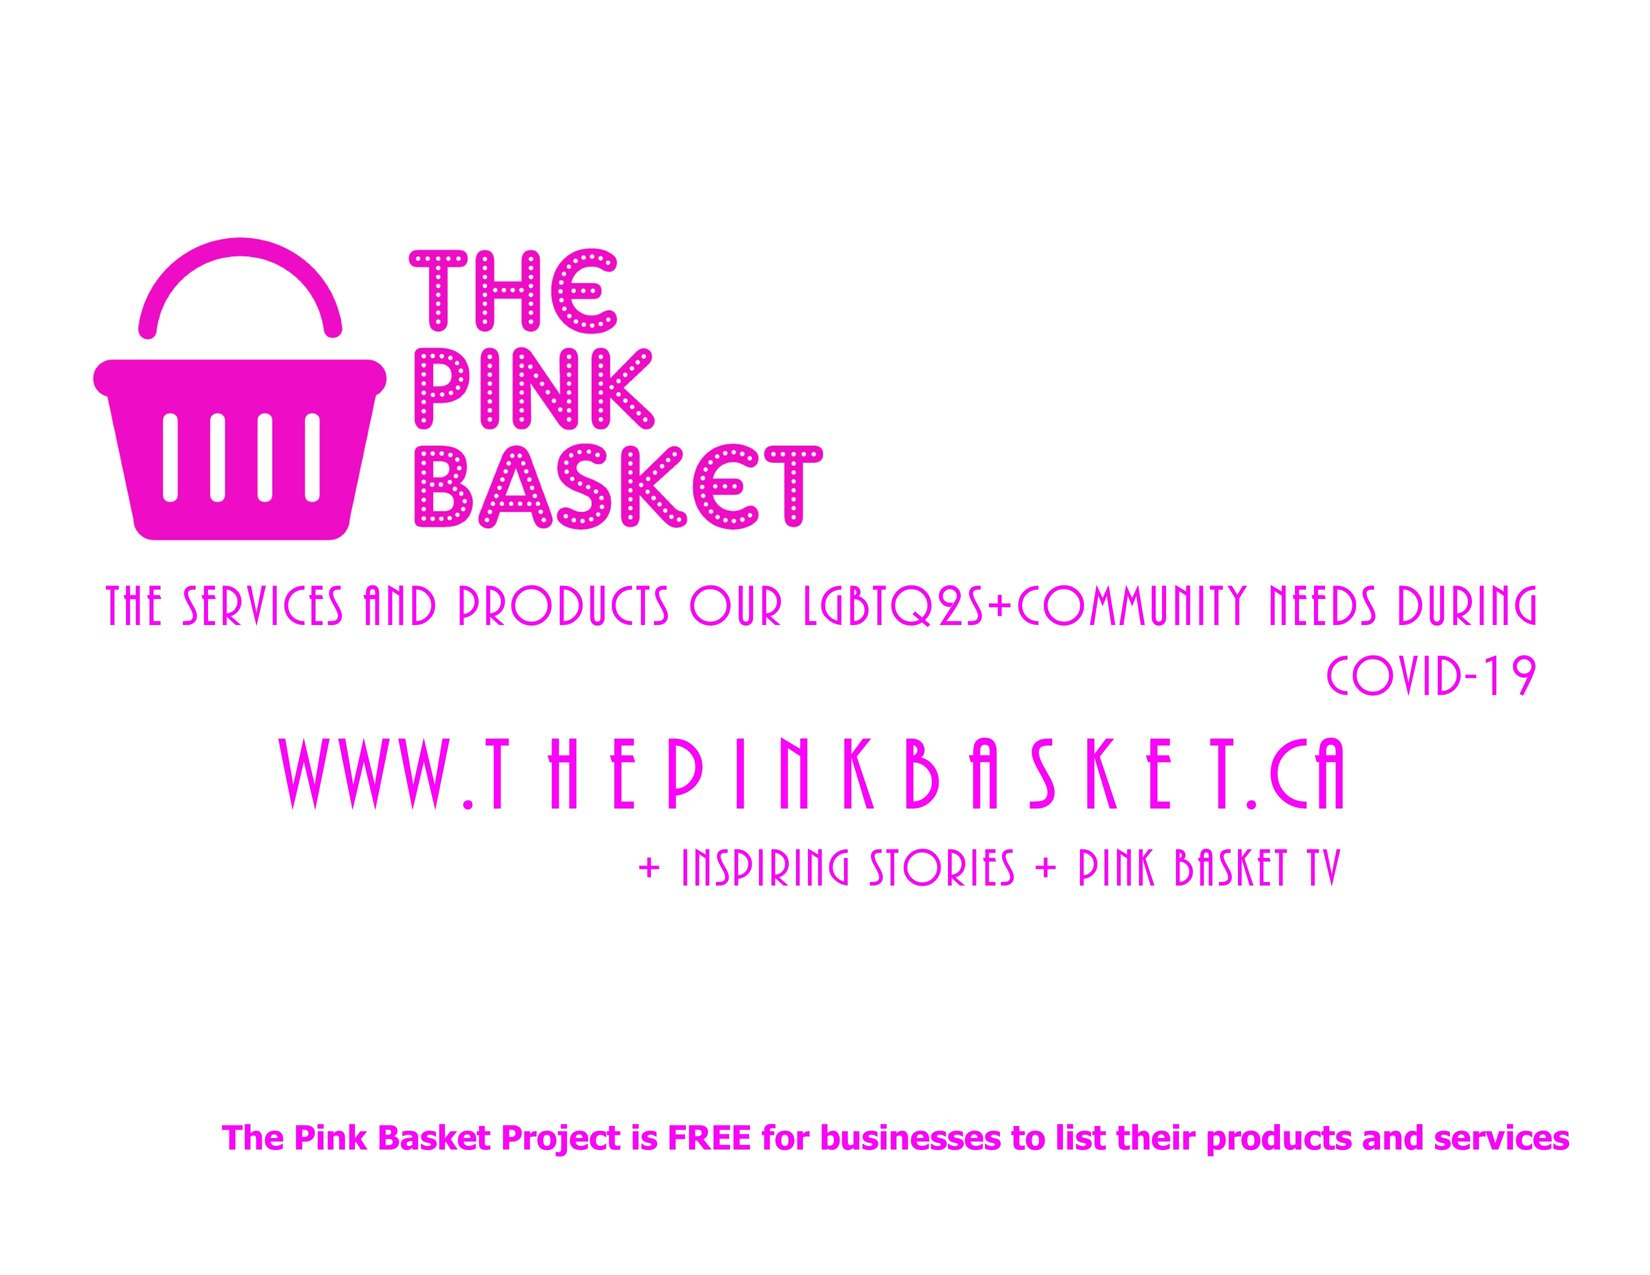 Promotional graphic for The Pink Basket Project